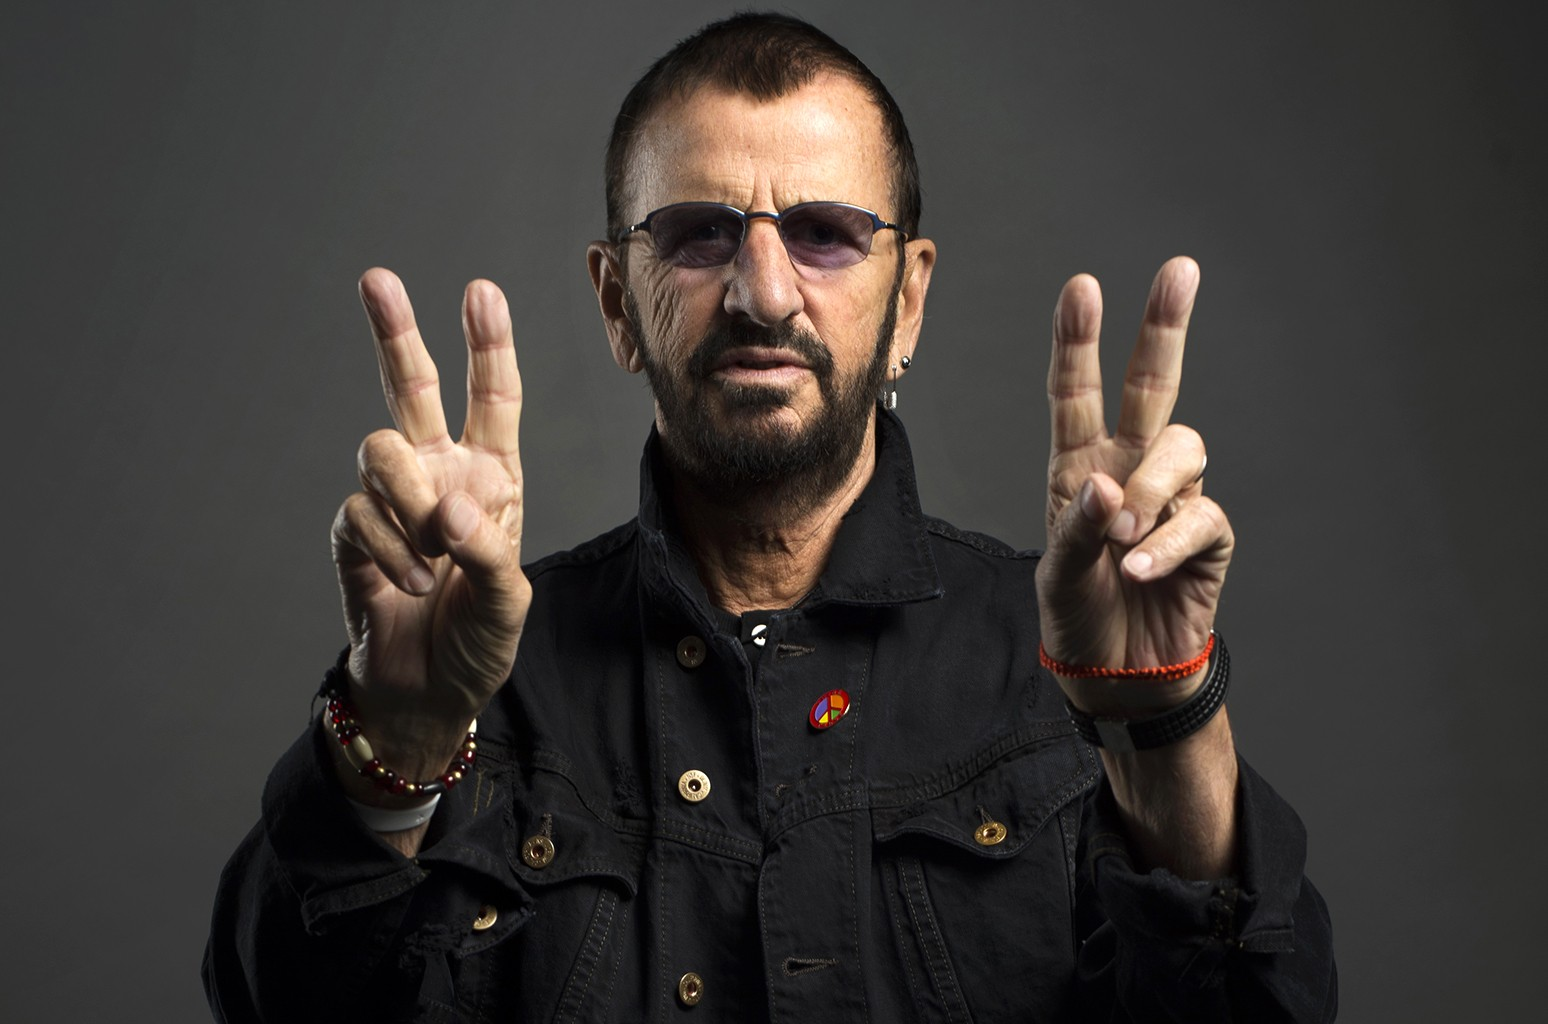 Ringo Starr photographed on June 13, 2016